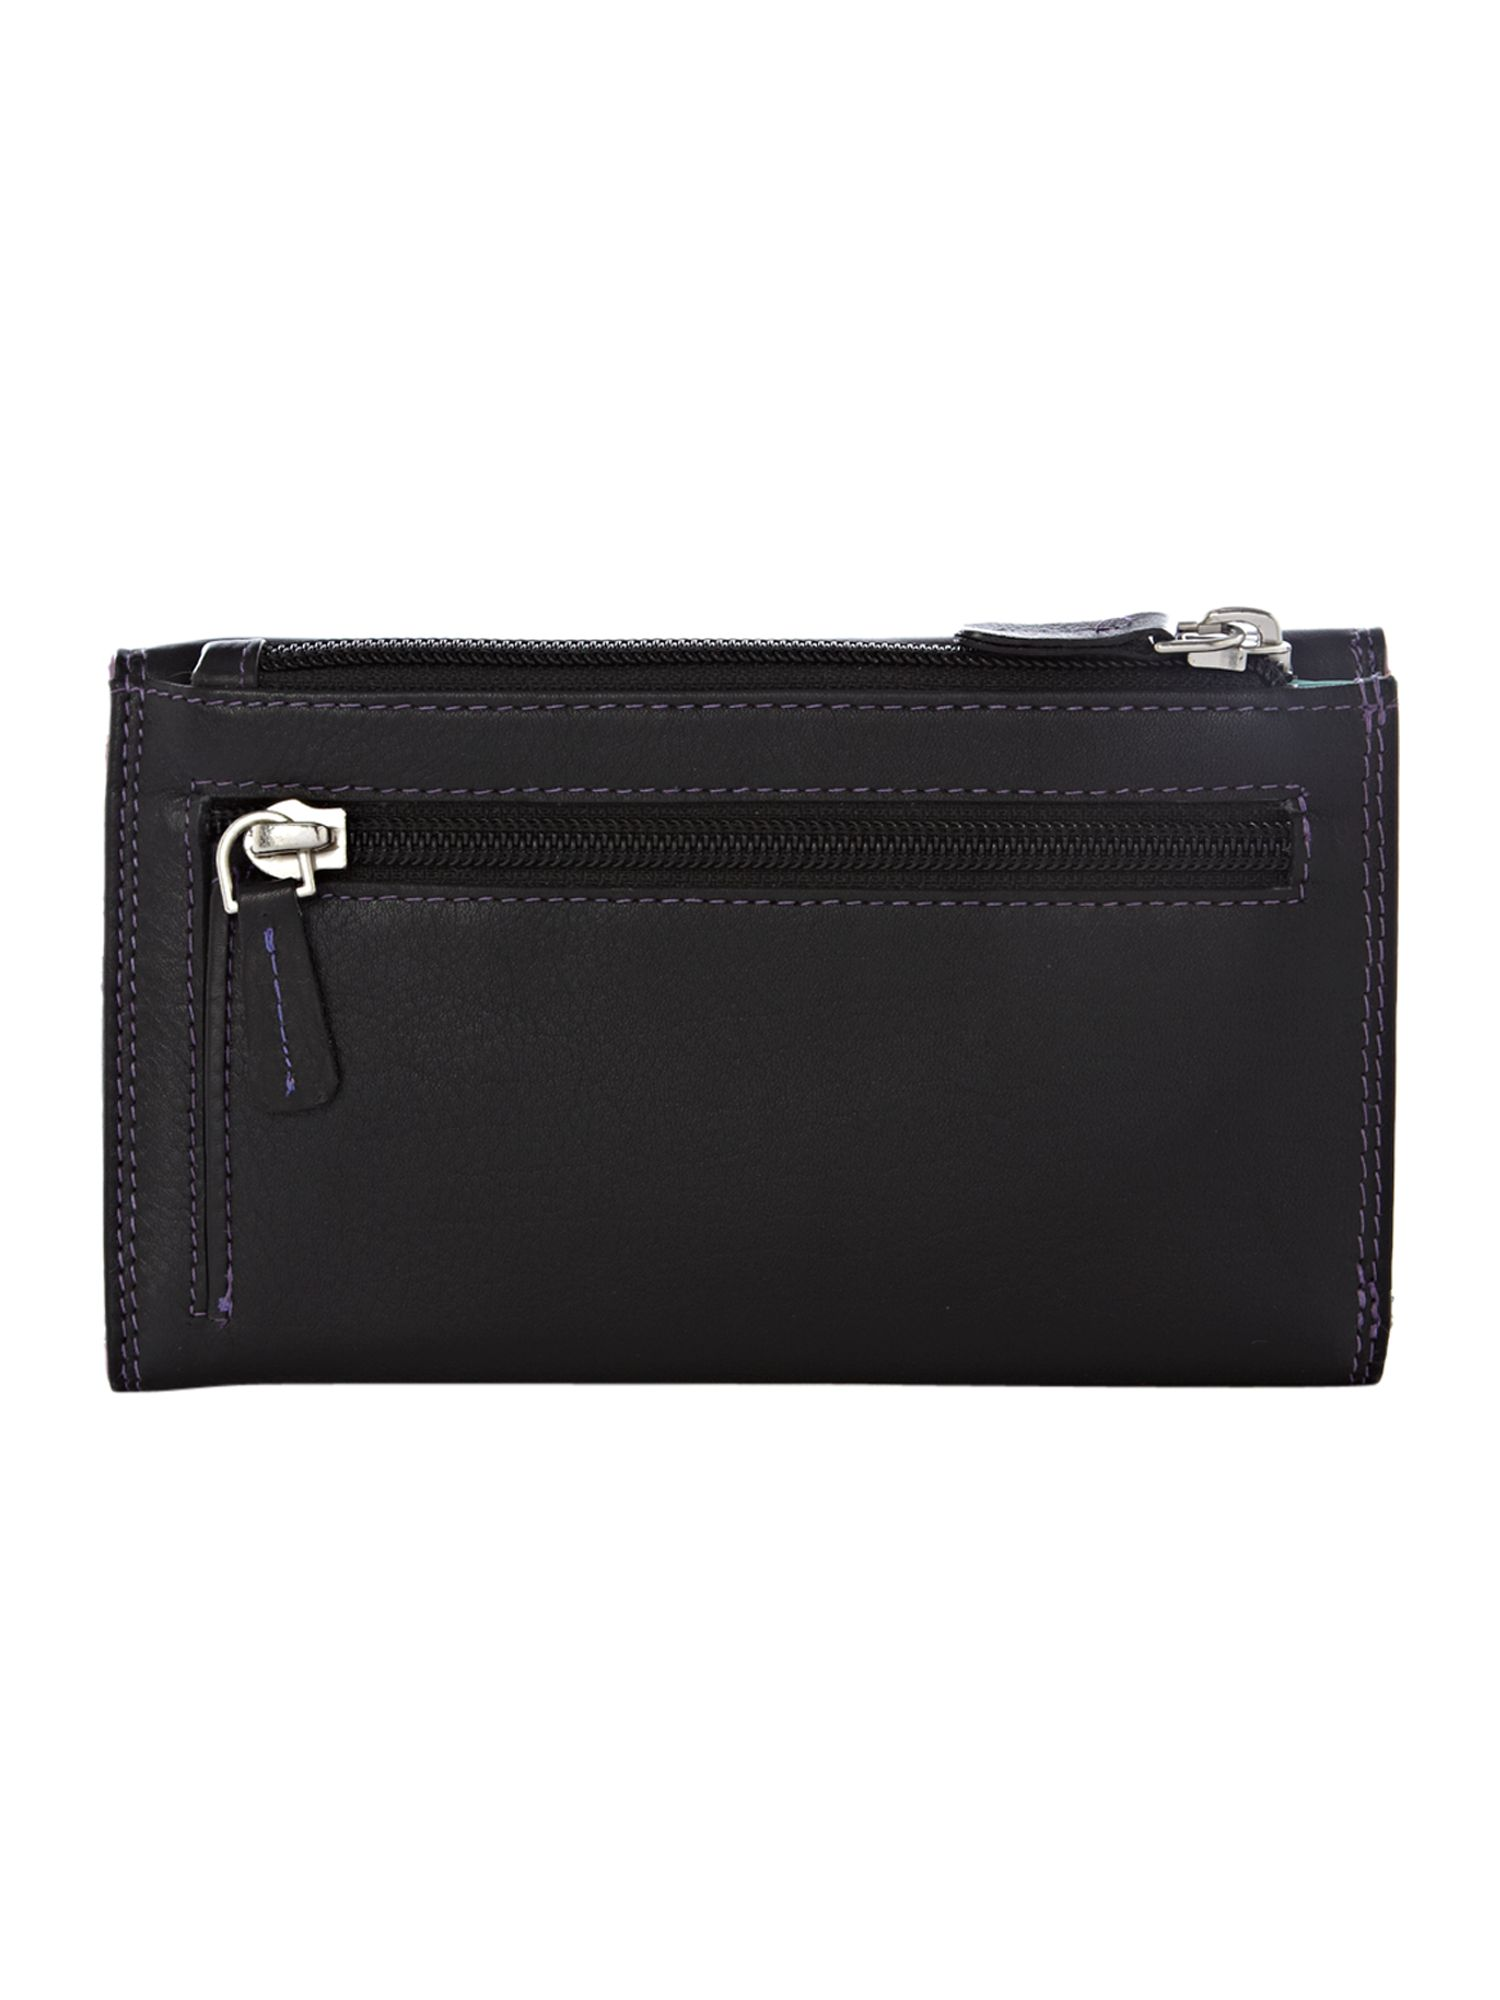 Black large card slot flapover purse